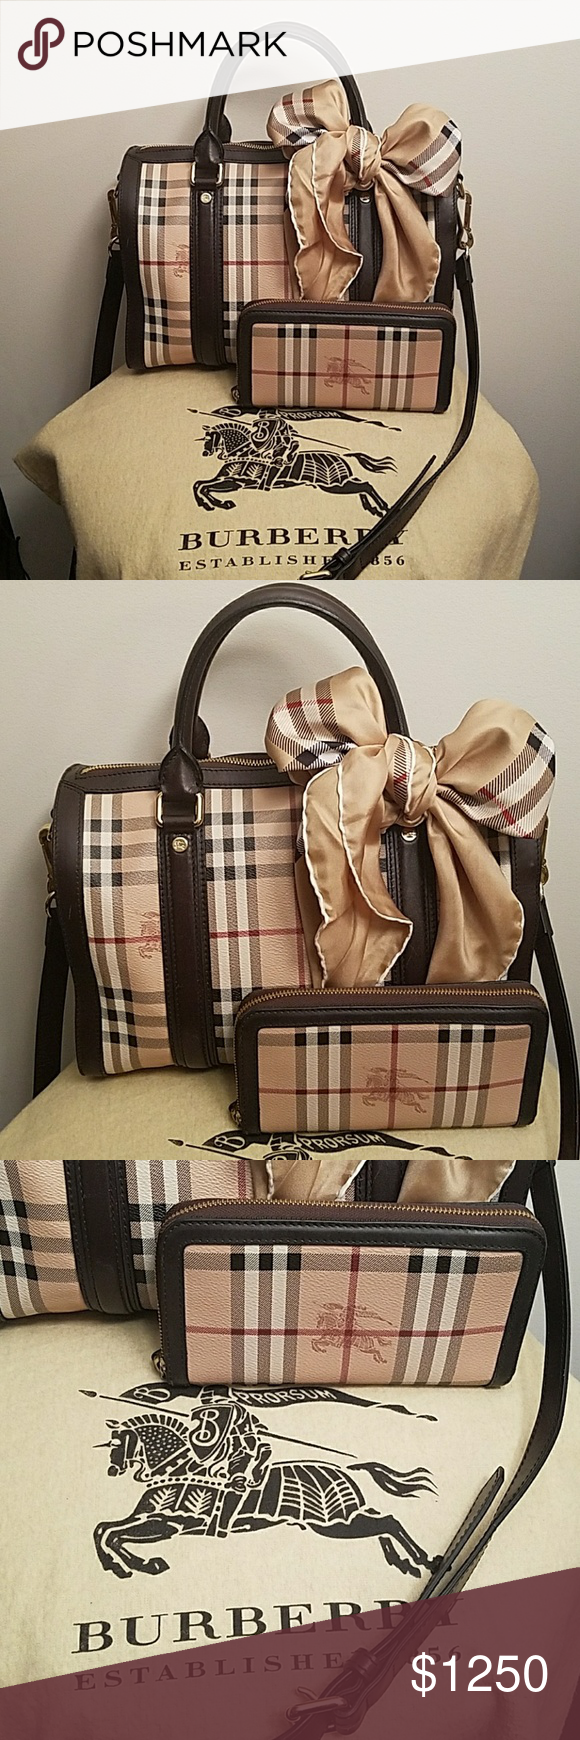 b49f0d0ca9a Med Burberry Haymarket Alchester Bowling Bag Set Stunning blend of dark brown  leather, Haymarket coated canvas make this Burberry Medium Bowling . for  your ...